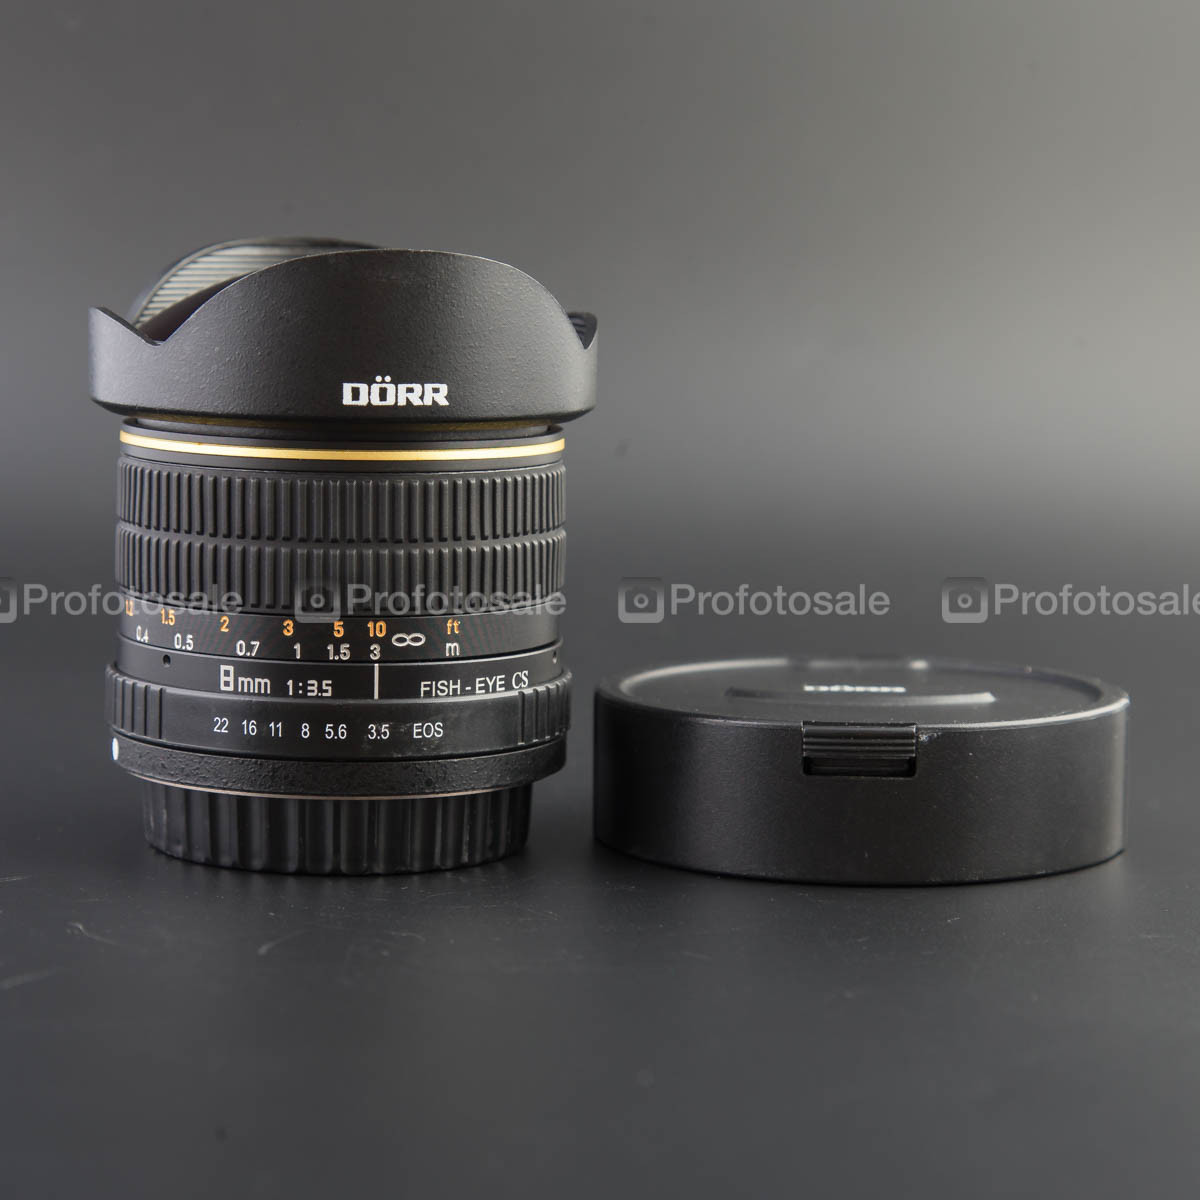 Samyang 8mm f/3.5 Aspherical IF MC Fish-eye (DORR) для Canon